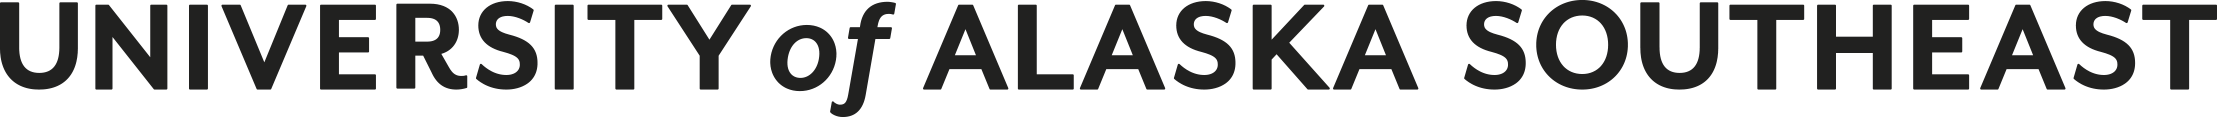 Text-only Horizontal black and white logo